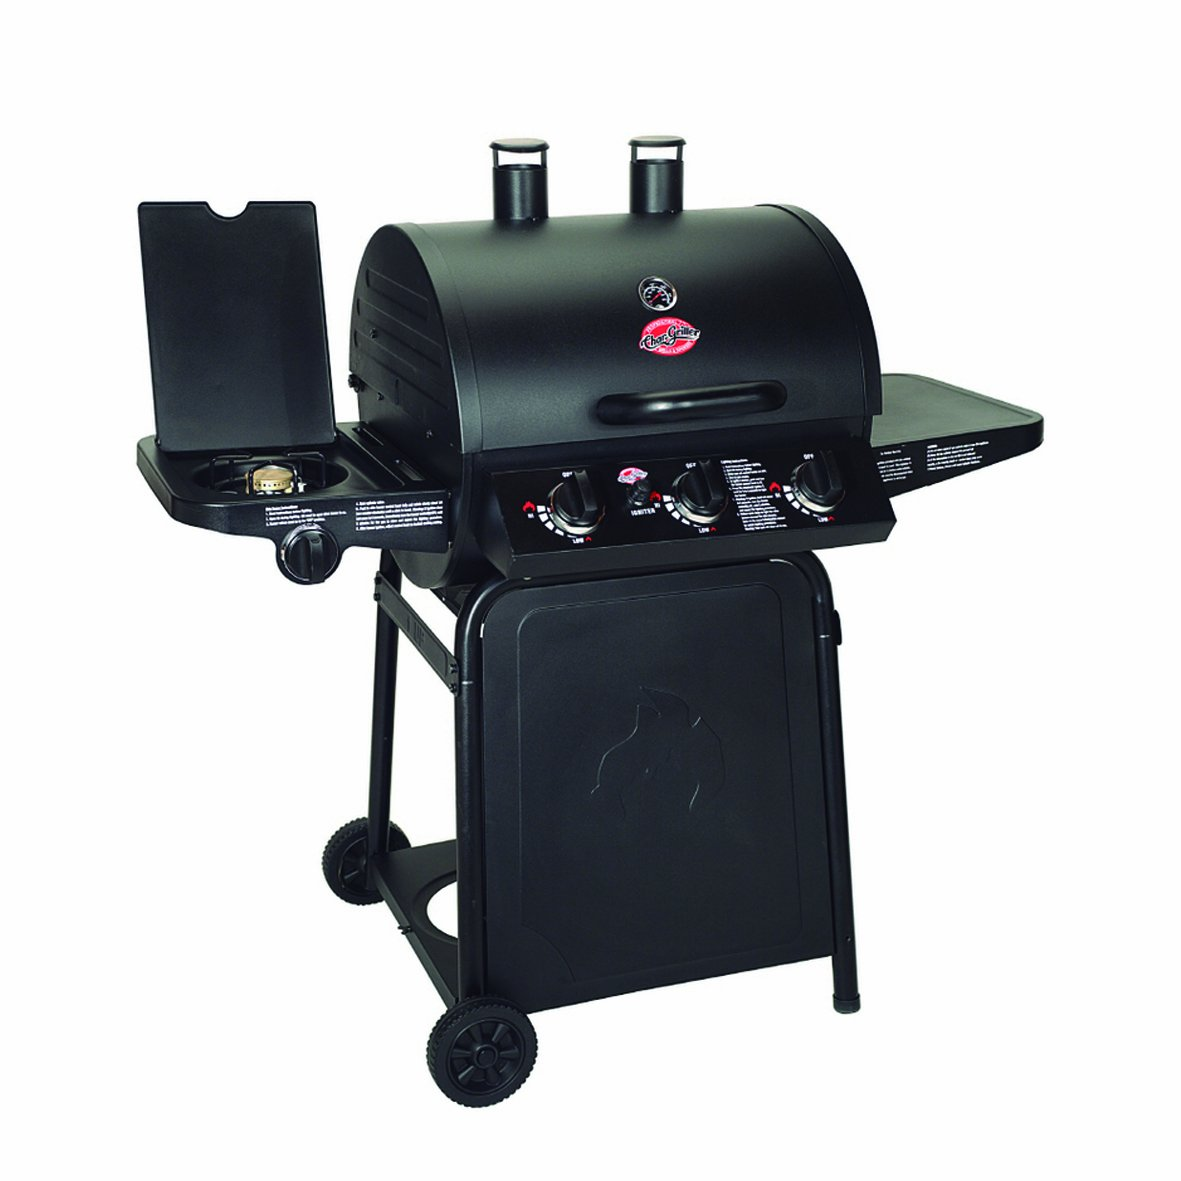 One of the Best Gas Grills for Under $300